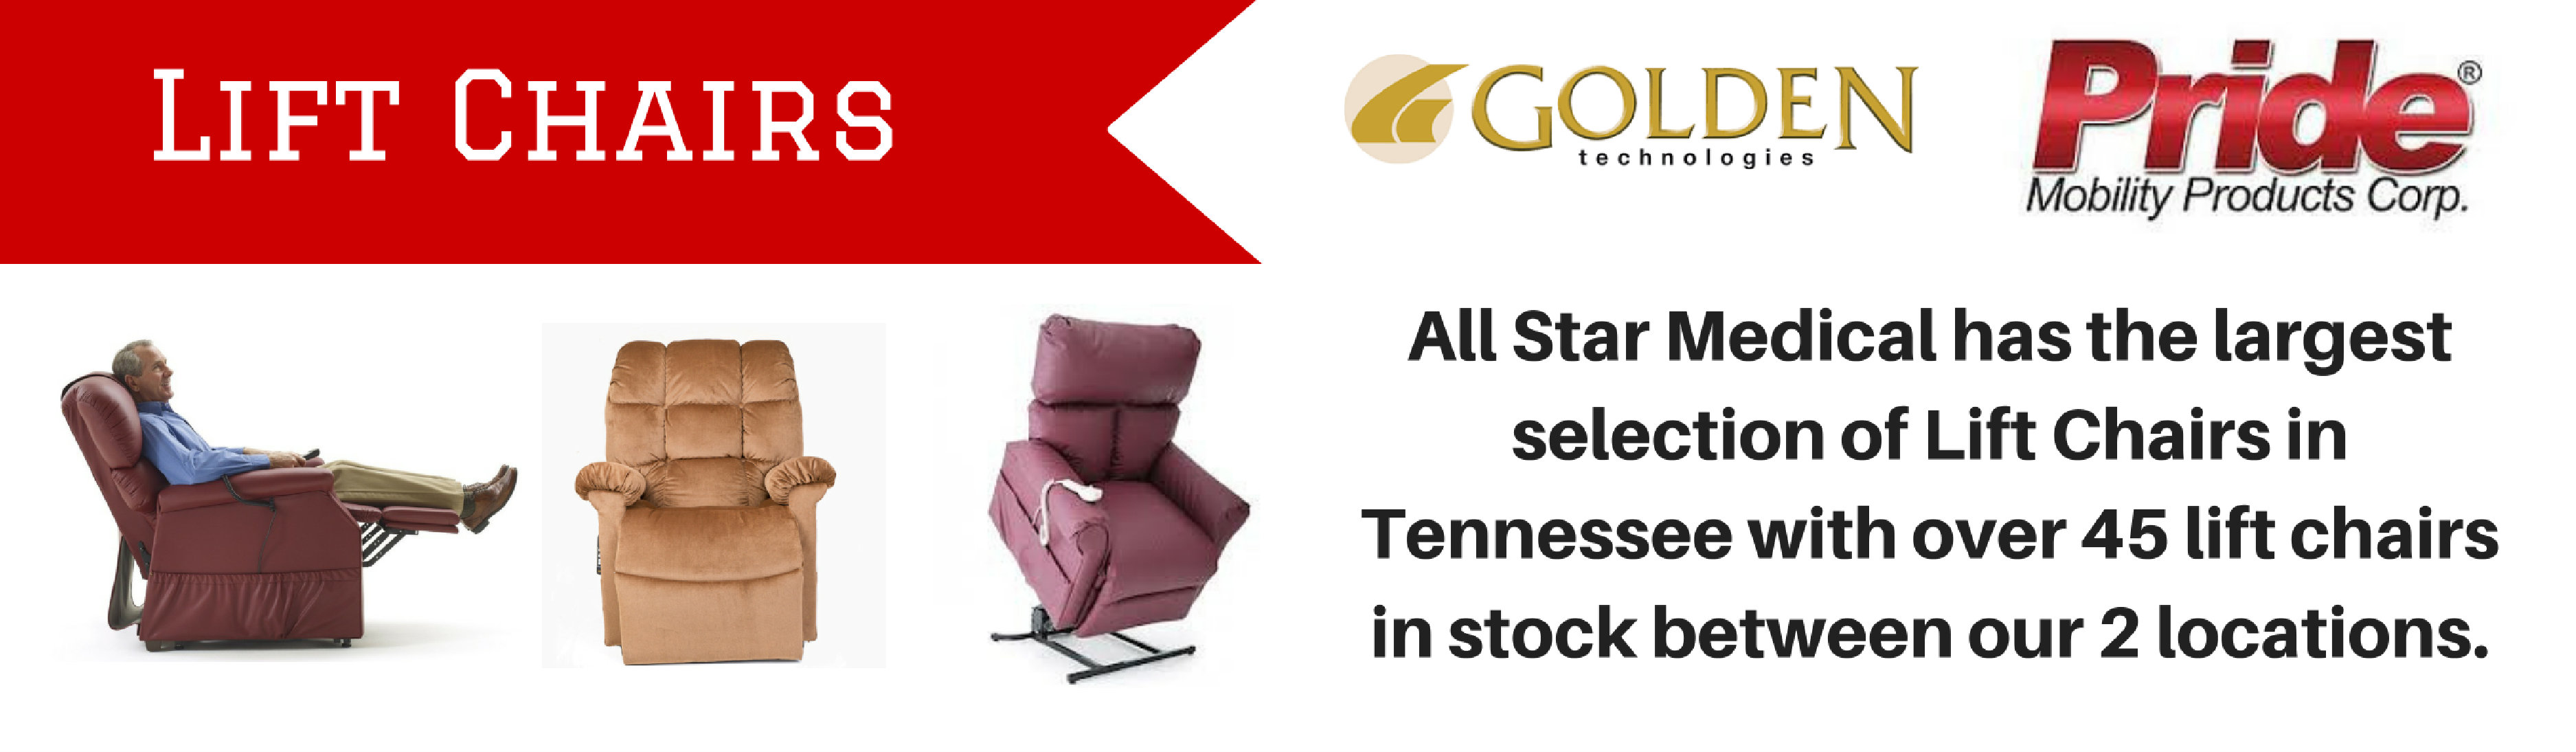 Lift Chairs Nashville TN Lift Chair Recliners on sale